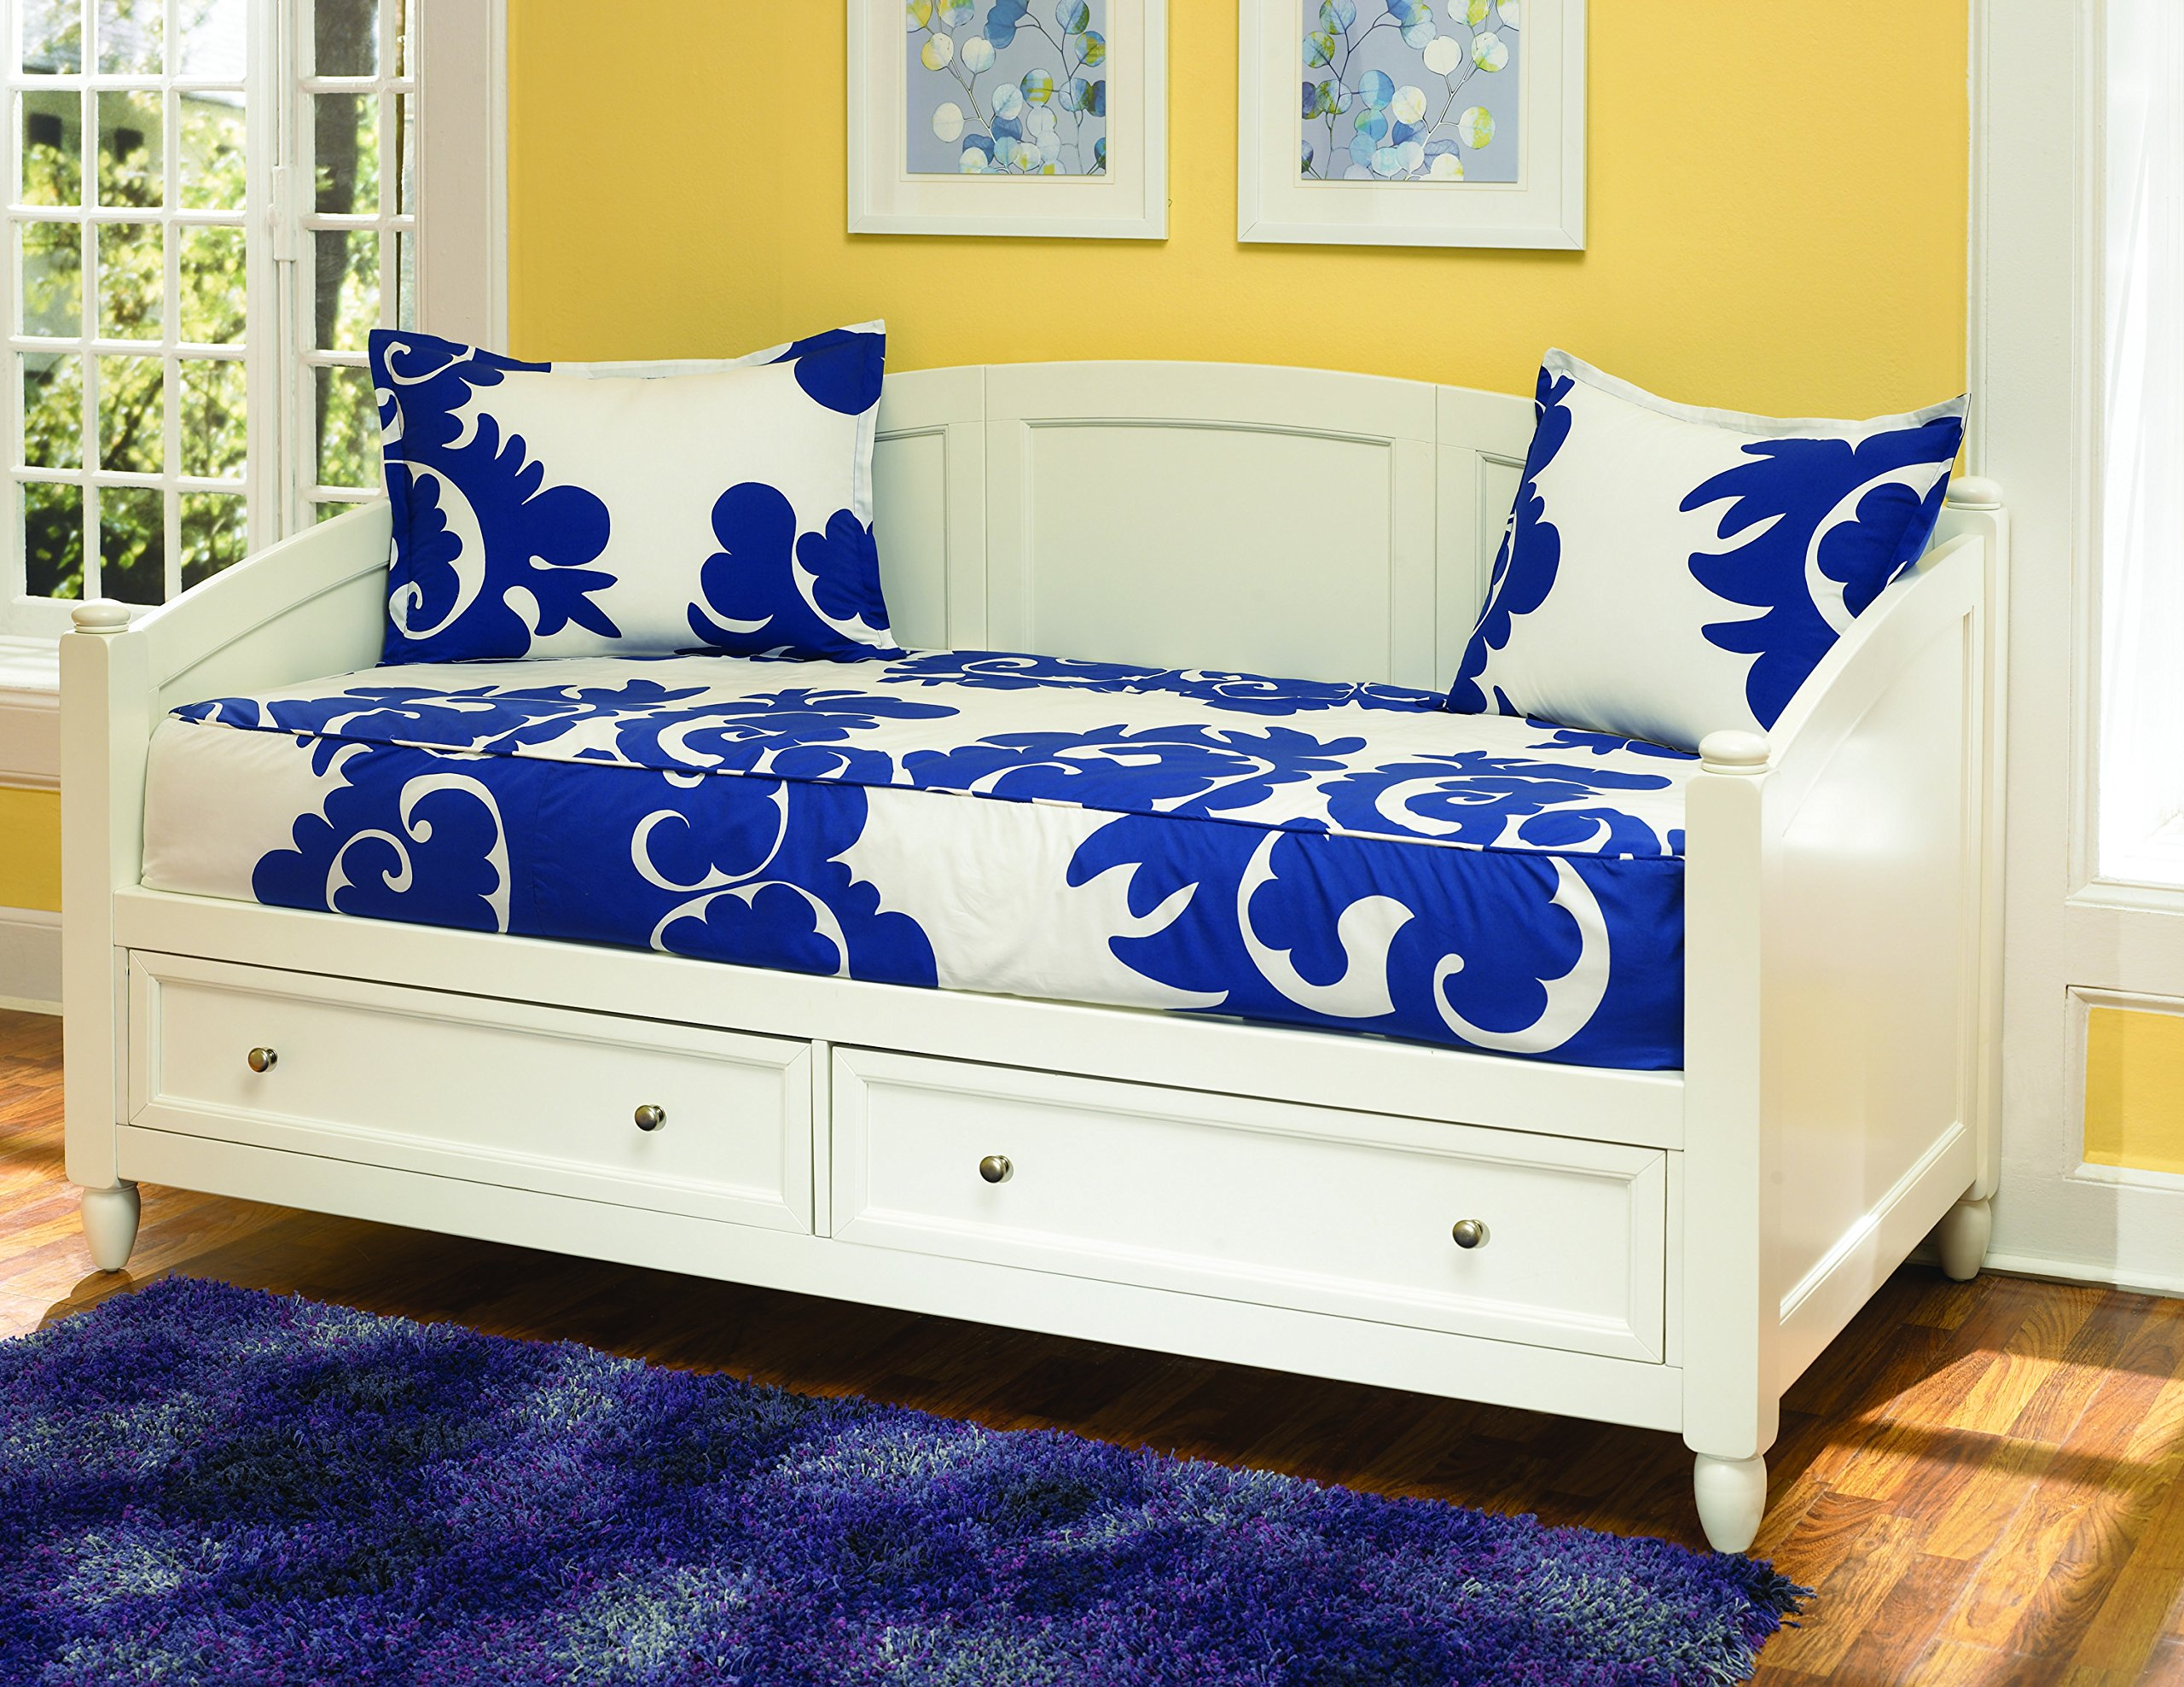 Home Styles 5530-85 Naples Daybed with Storage, White Finish